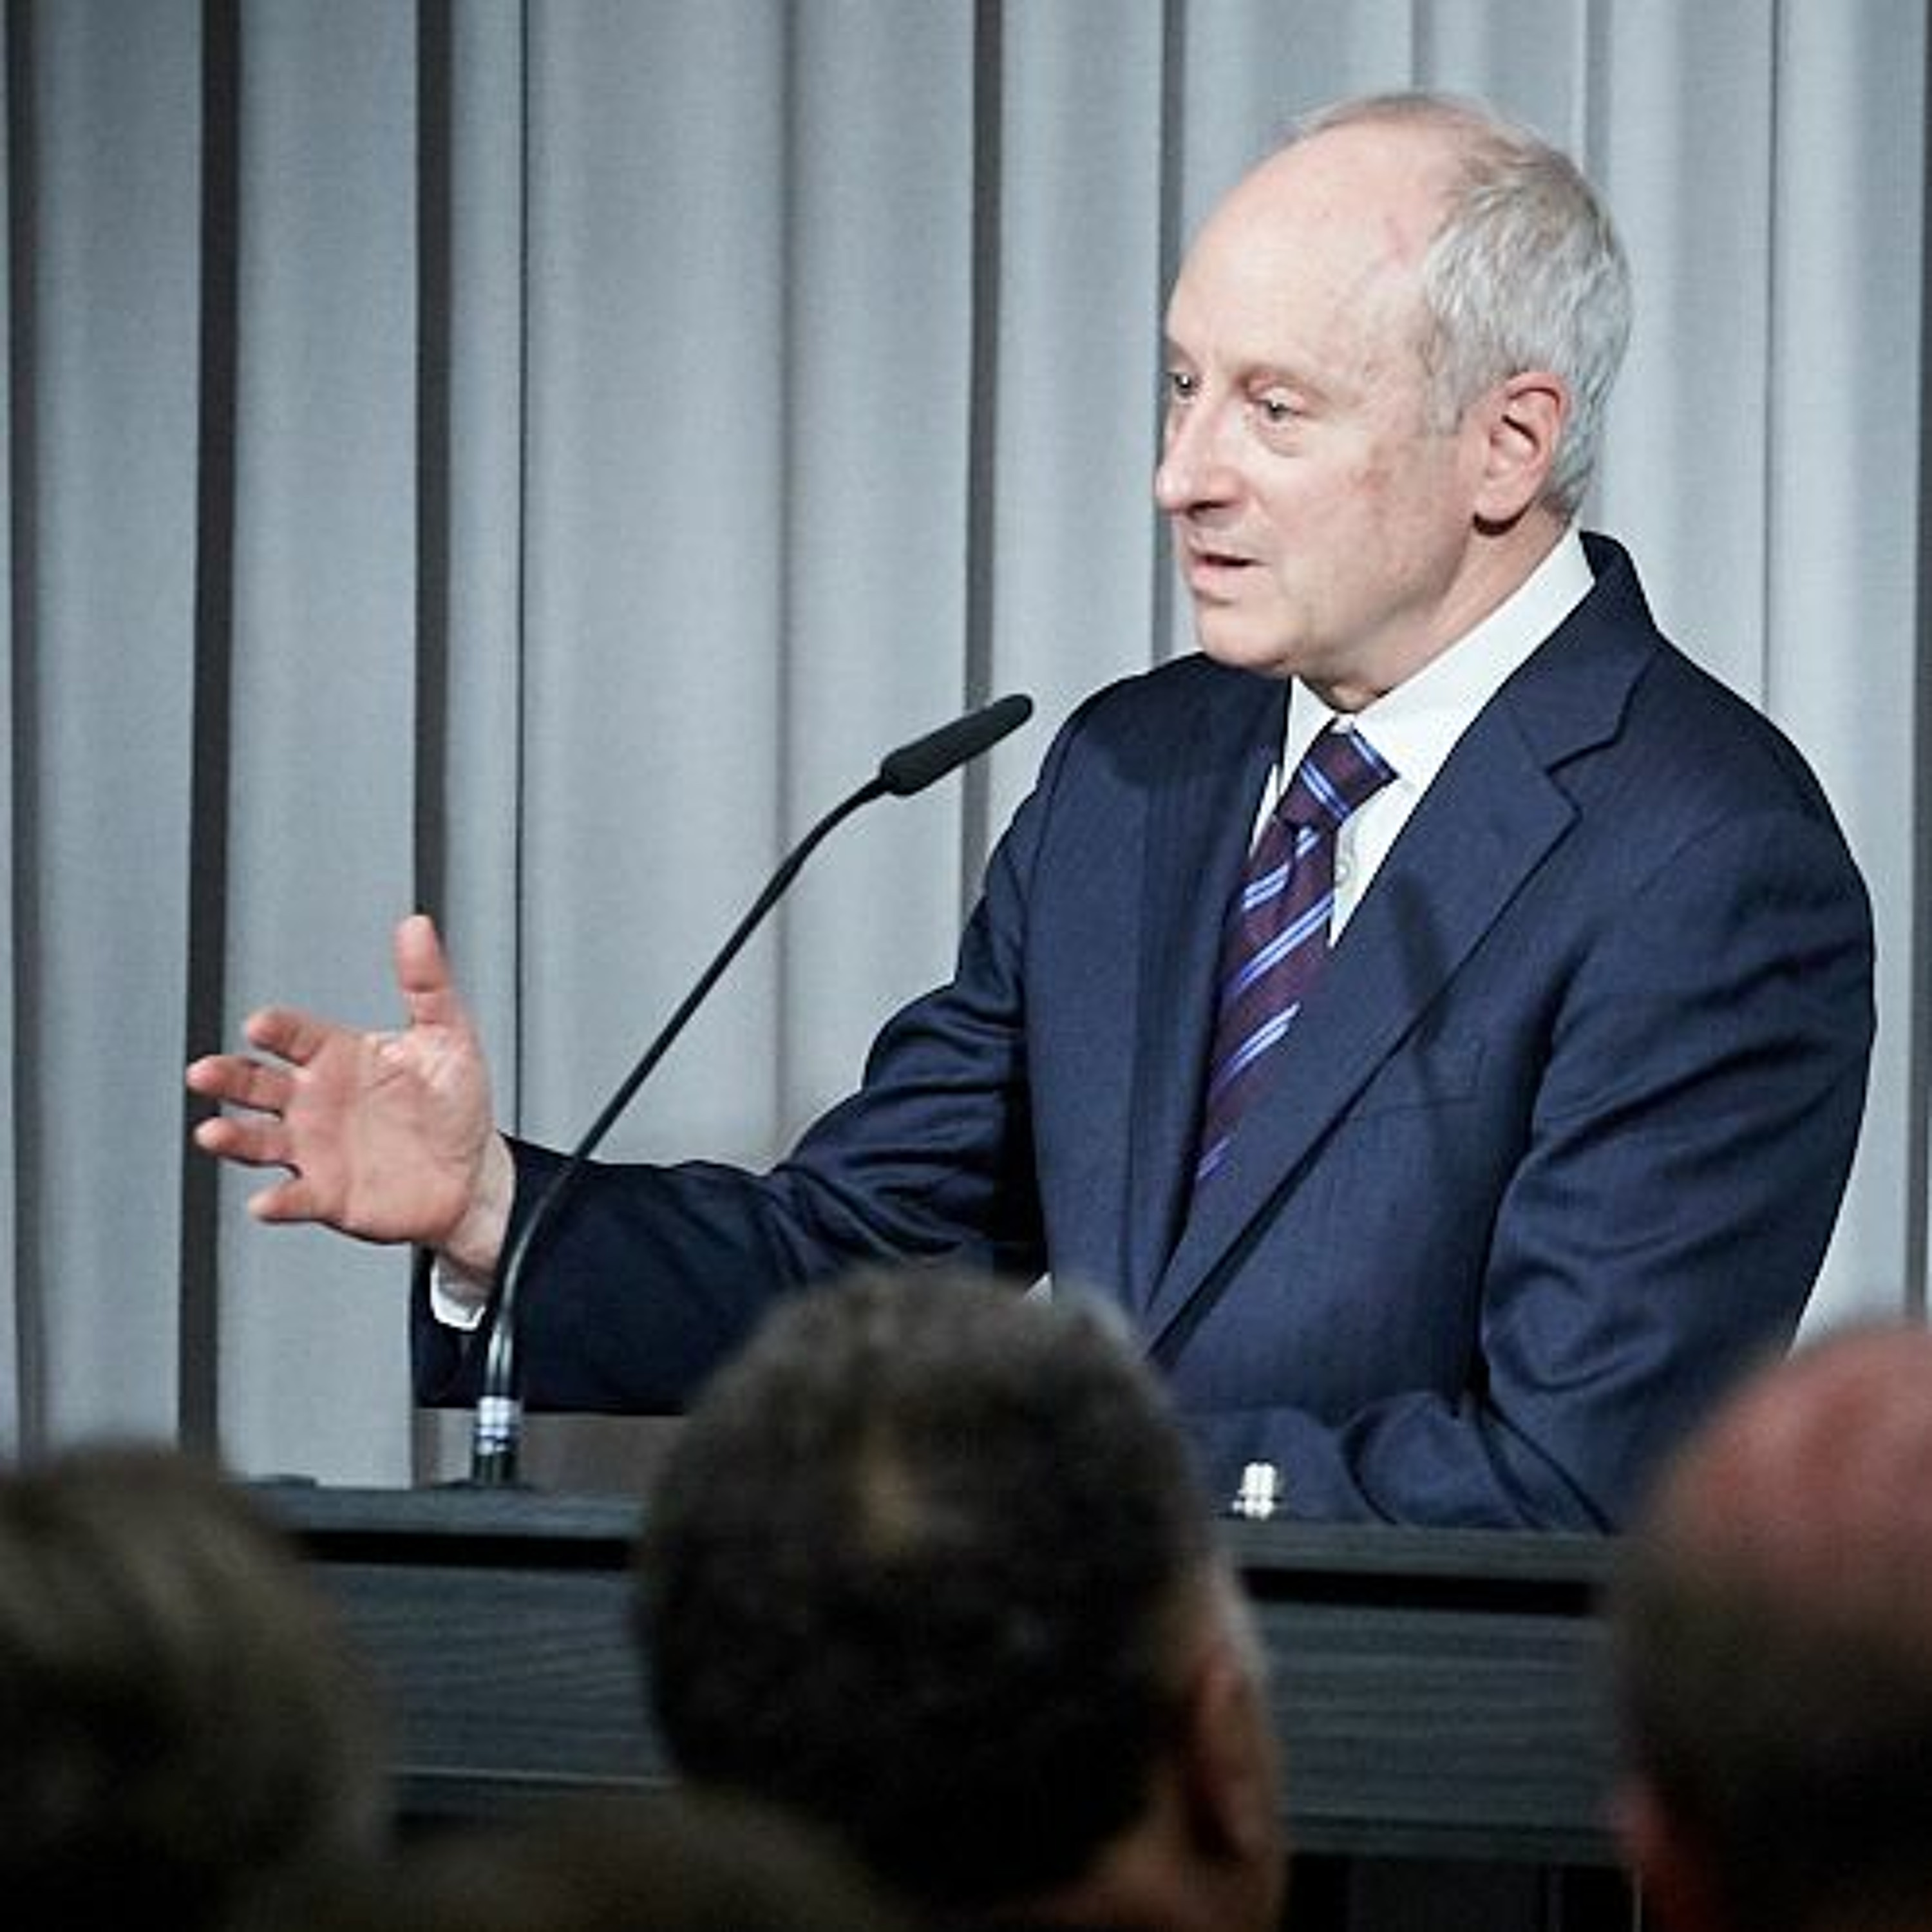 Beyond the Lecture: Michael Sandel